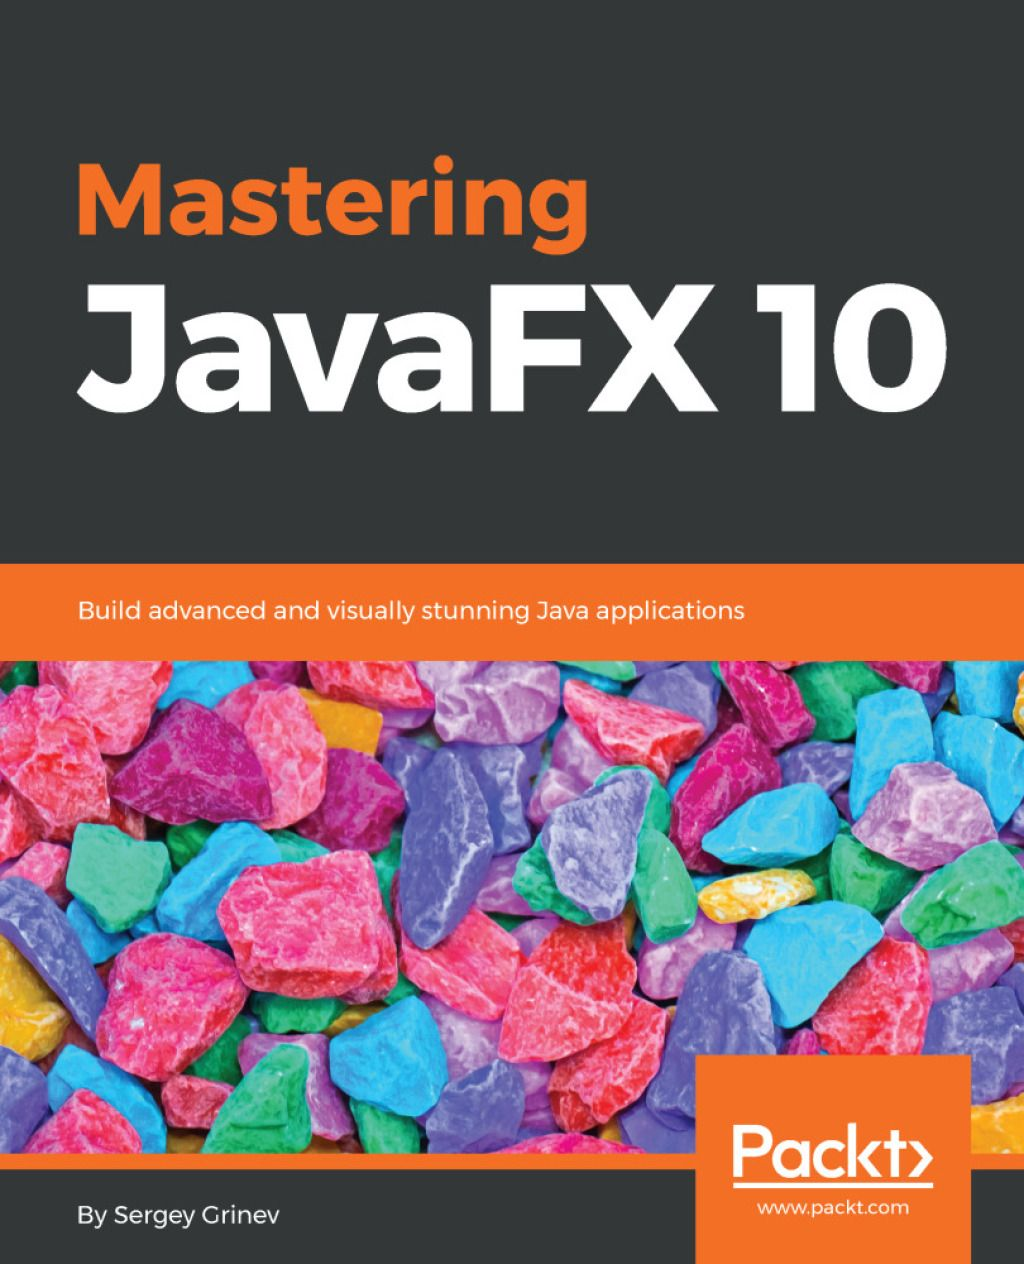 Mastering JavaFX 10 (eBook) in 2019 | Products | Audio books